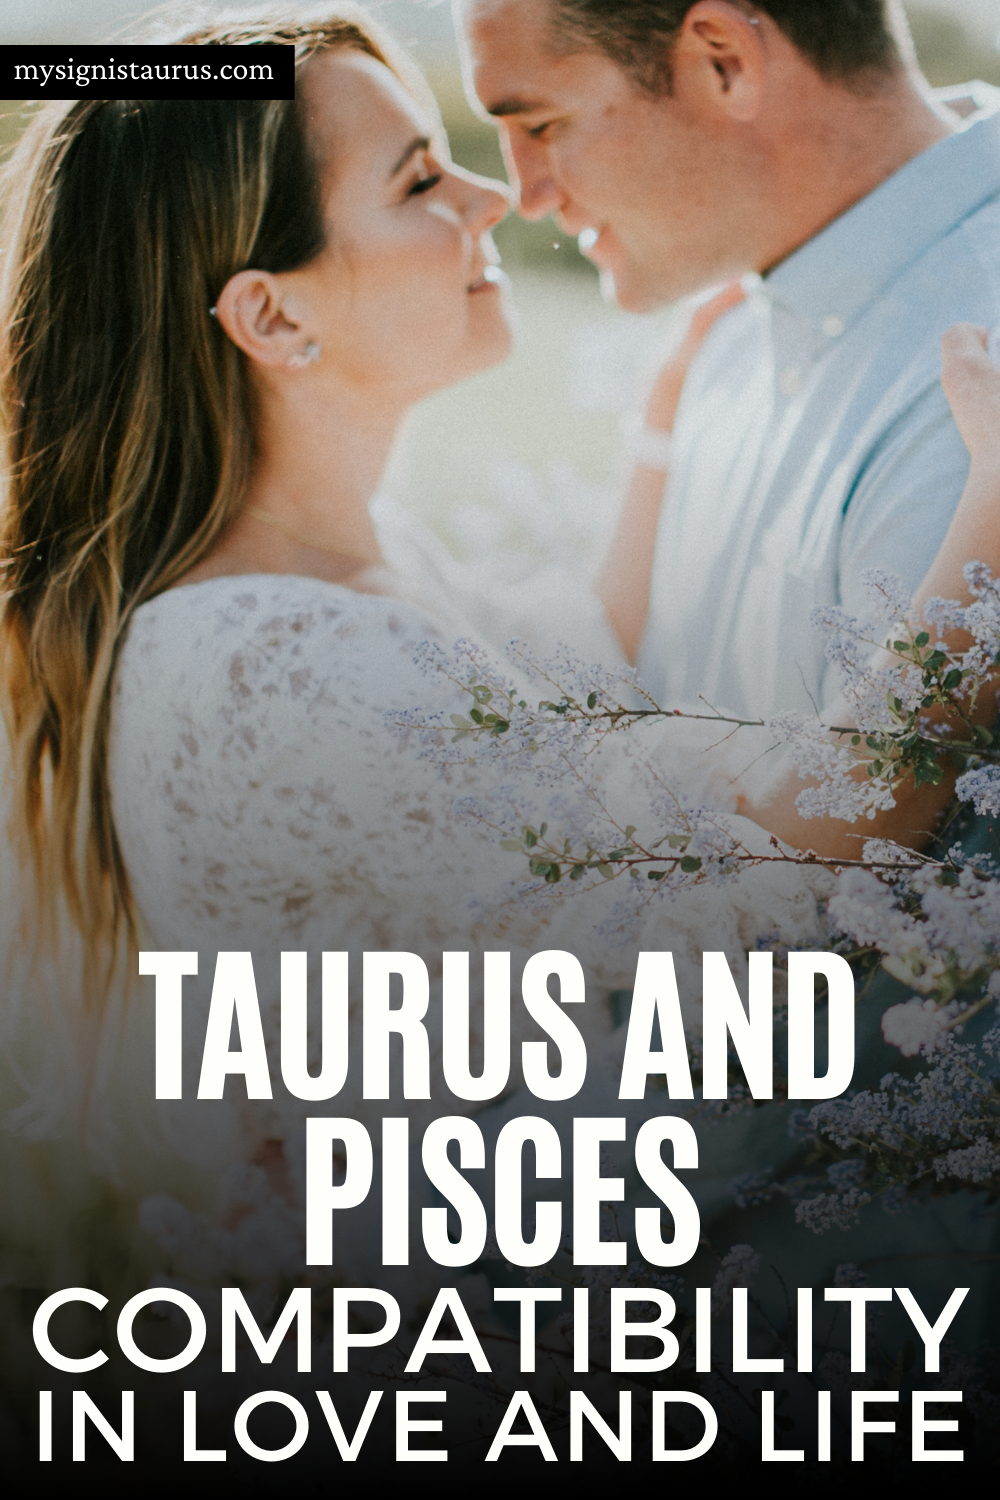 Taurus And Pisces Compatibility In Love And Life  #taurus #pisces #tauruslove #astrology #zodiac